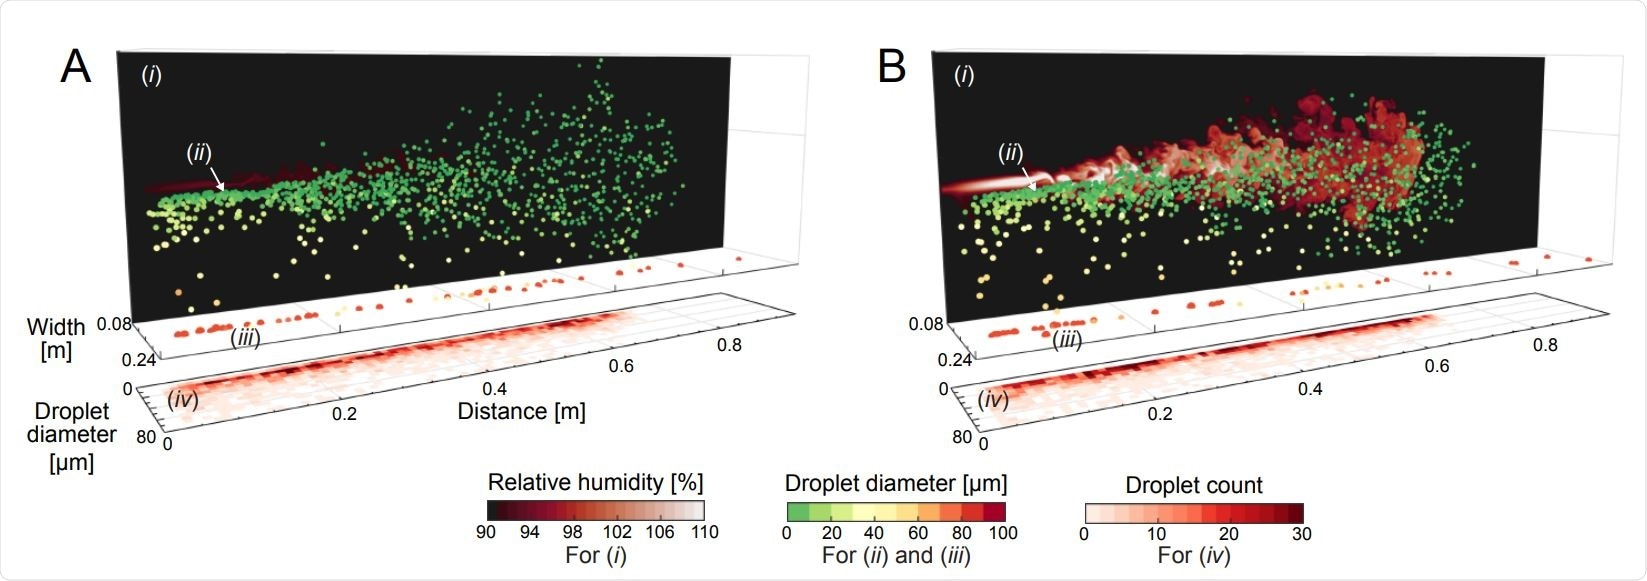 Flow visualisation snapshots from our direct numerical simulations of water droplets in a warm humid puff in ambient air at (A) θamb = 30◦C and (B) θamb = 10◦C, both at RHamb = 90%. Corresponding movies can be seen in Movies S1 and S2. The snapshots show (i) vertical 2D planes of the local RH fields, (ii) the instantaneous droplets spatial distribution, (iii) the heavy large droplets which already fell on the ground, and (iv) the instantaneous droplet size histograms versus distance. The local RH planes are taken from the vertical mid-plane of the puff and are plotted on the background for clarity. Droplets are colour coded by their instantaneous sizes. Initial droplet sizes are prescribed with a distribution similar to J. P. Duguid (13) (plotted in Fig. S2) and are injected evenly in time with the same local inflow velocity. The initial temperature of the droplets and puff is 34◦C. Both snapshots are taken at 0.6s corresponding to the cut-off time of the puff. In the colder conditions of (B), the expelled humid puff over-saturates (seen as the lighter colored RH field and visible in Movie S2), which in turn dictates growth of smaller droplets caught within the puff. Correspondingly, the droplet counts are confined within a narrower range of sizes in (B) as compared to (A),